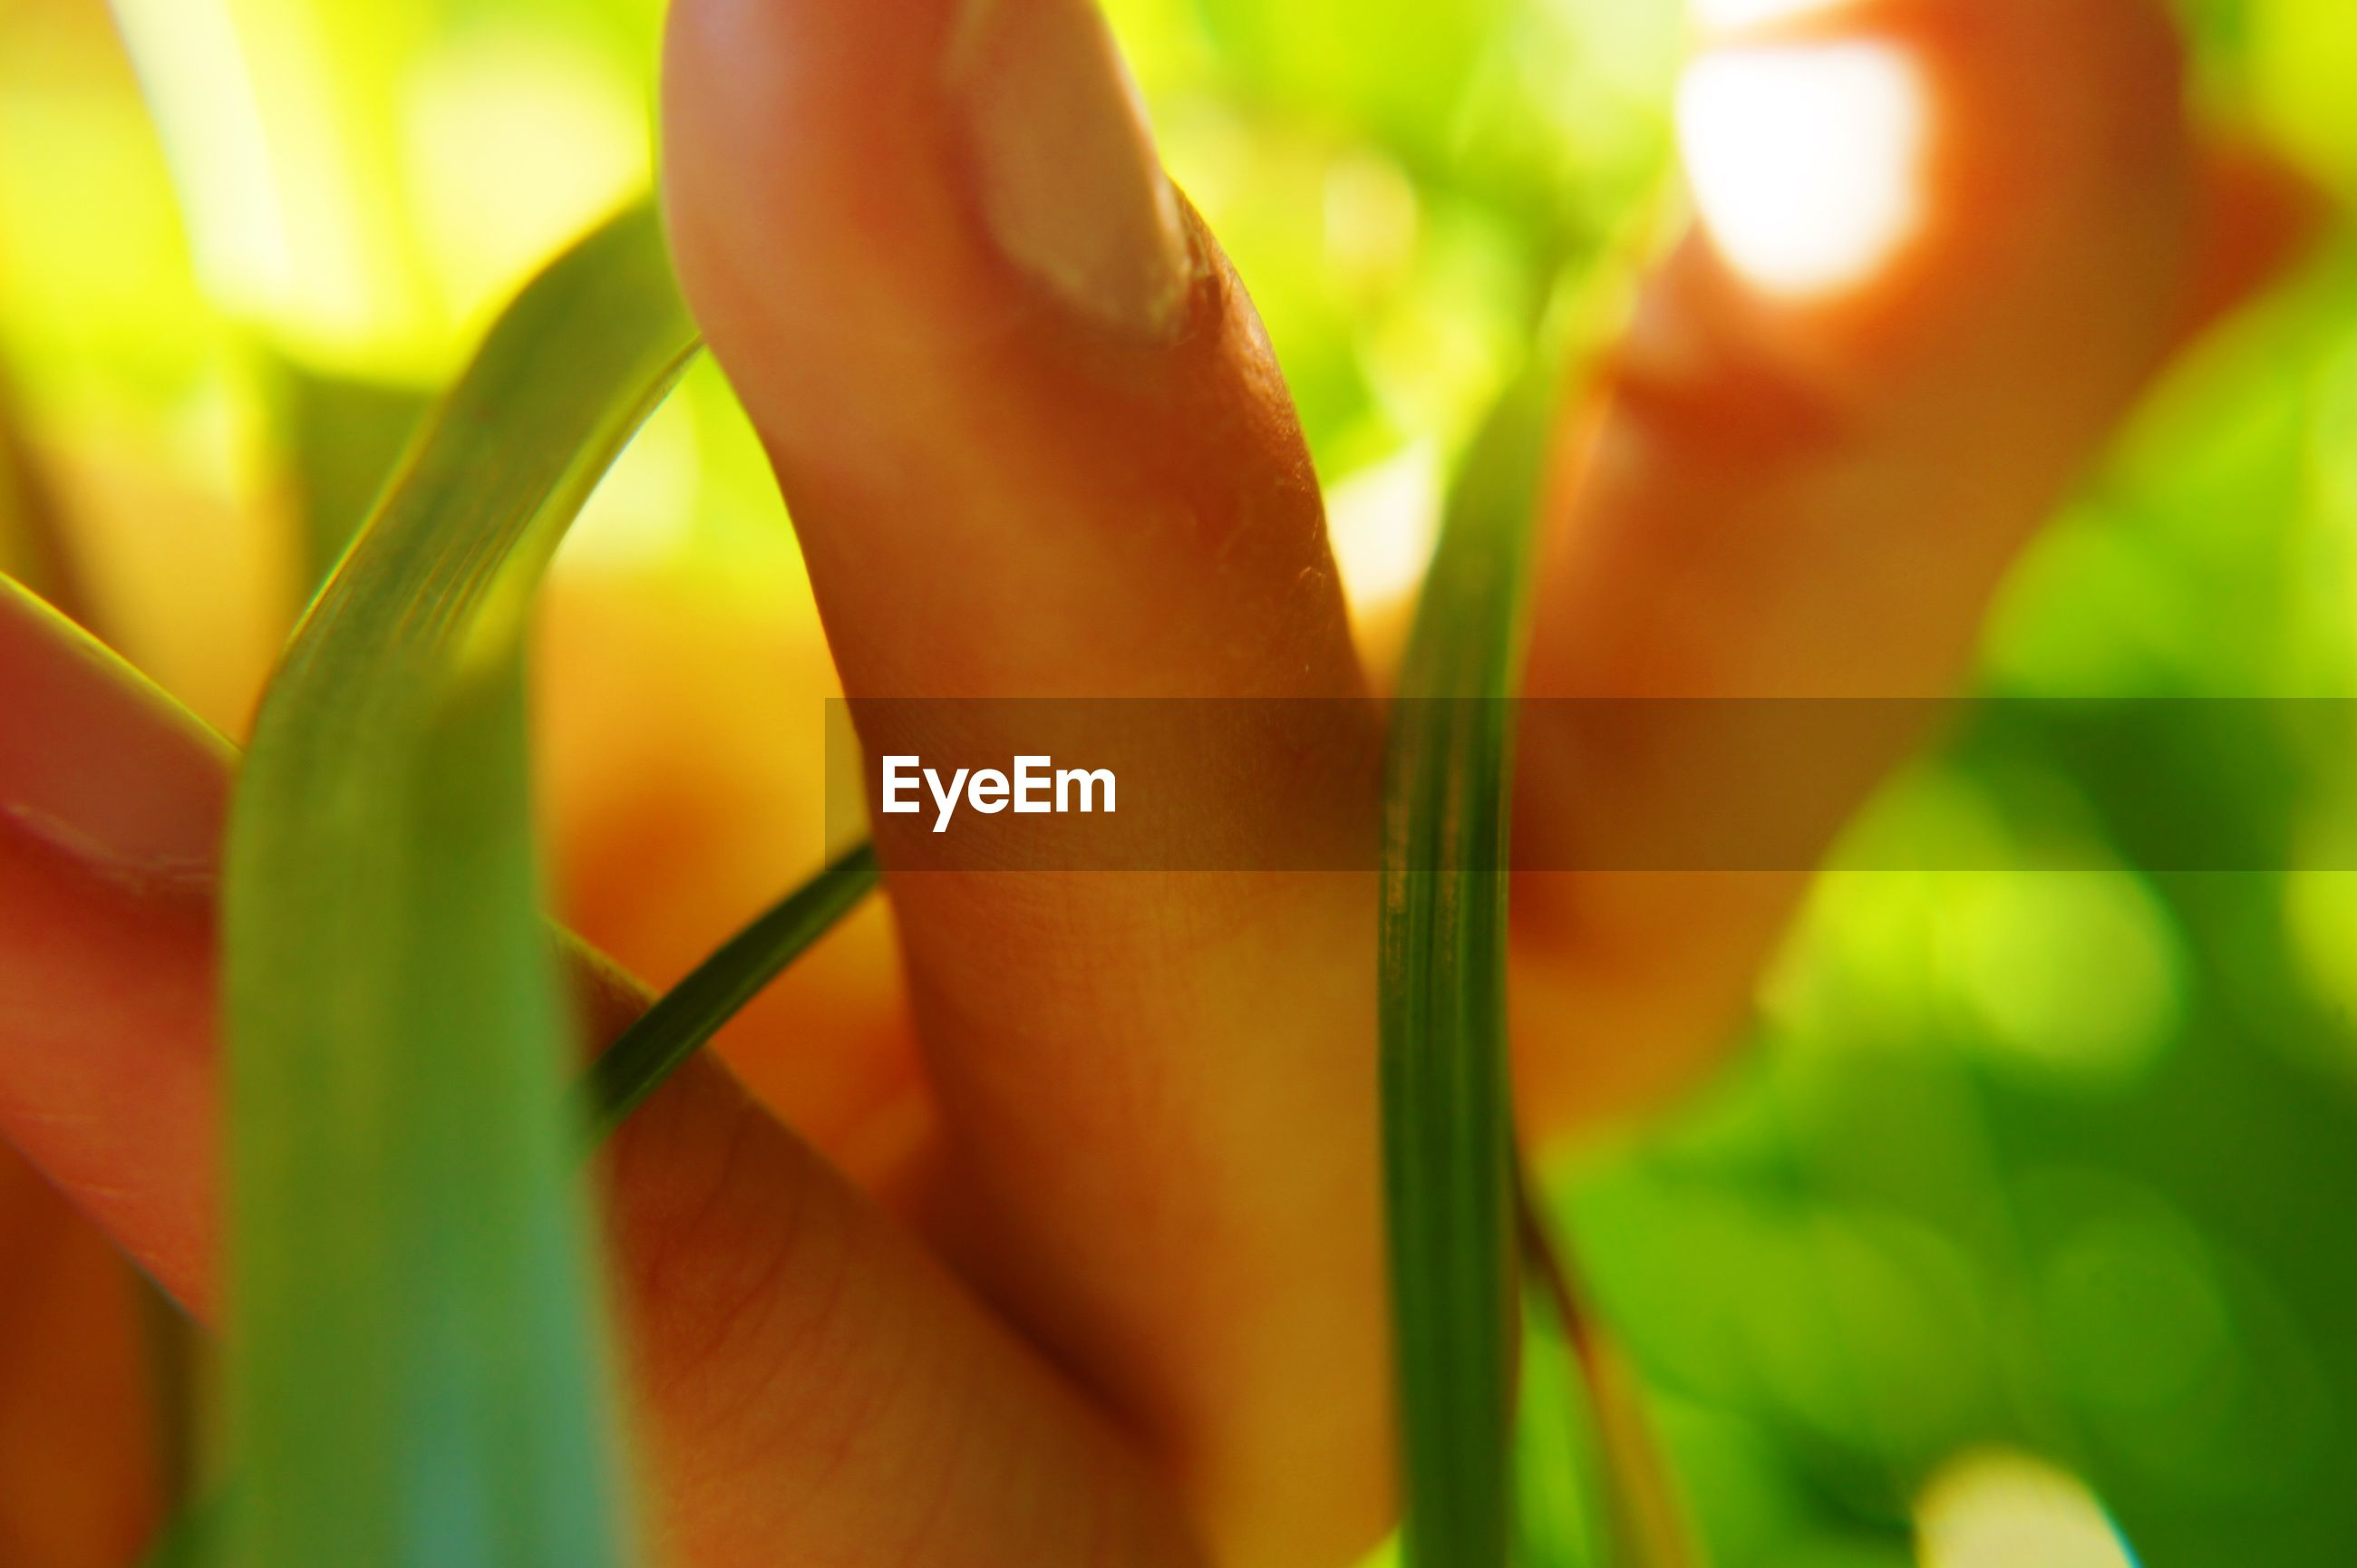 Extreme close-up of hand holding plants outdoors